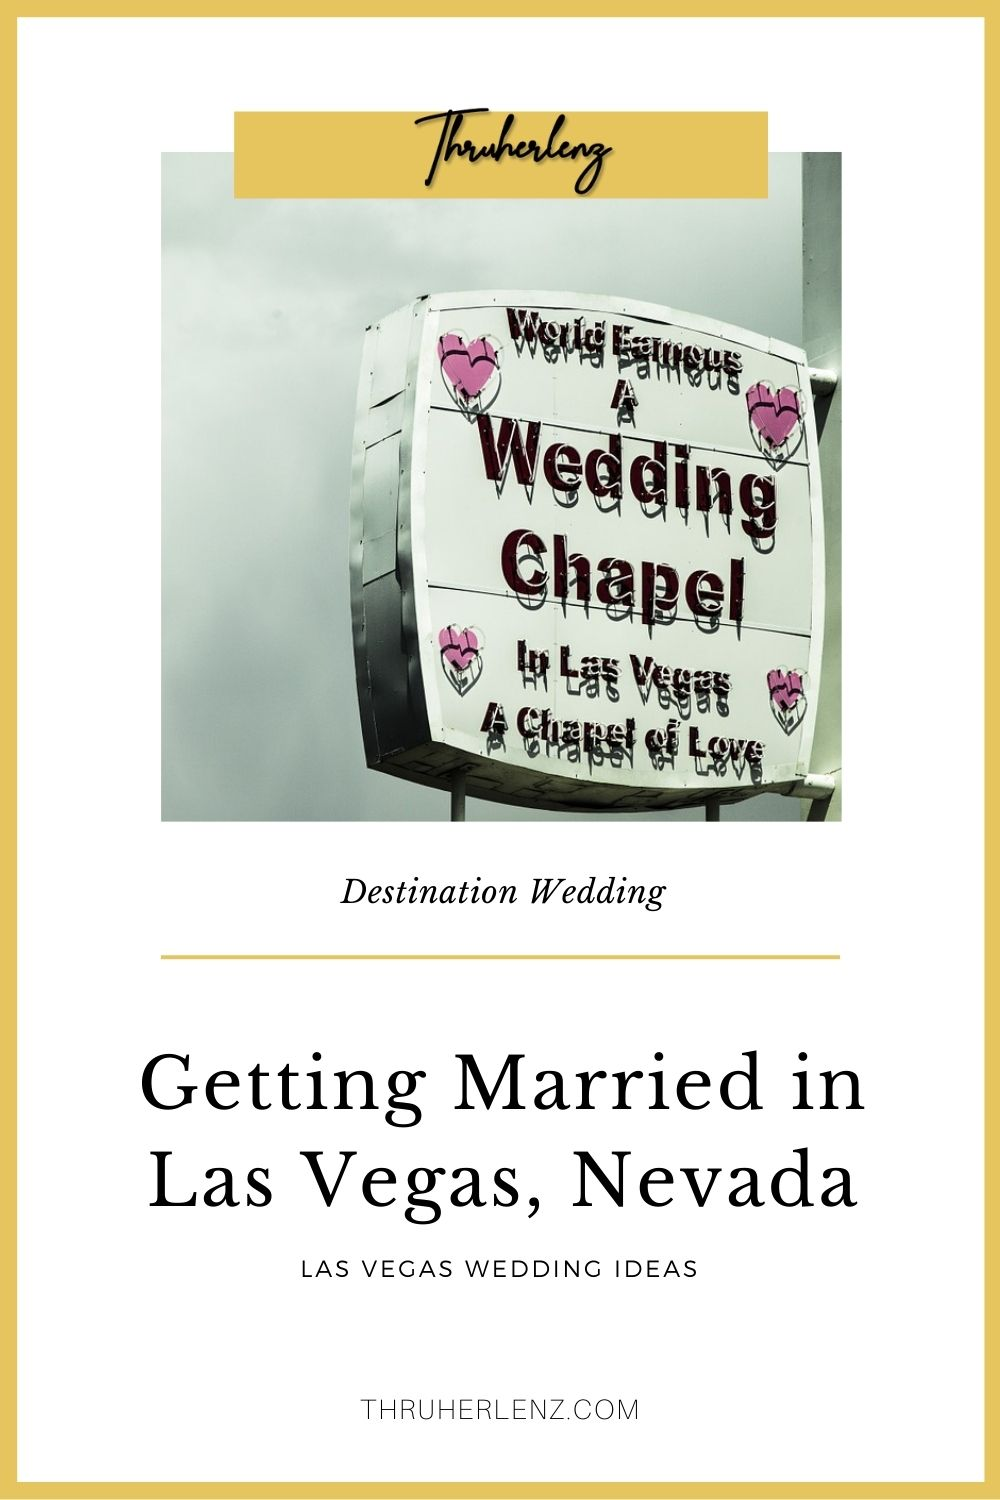 Las Vegas; City of a Thousand Ways to Get Married.